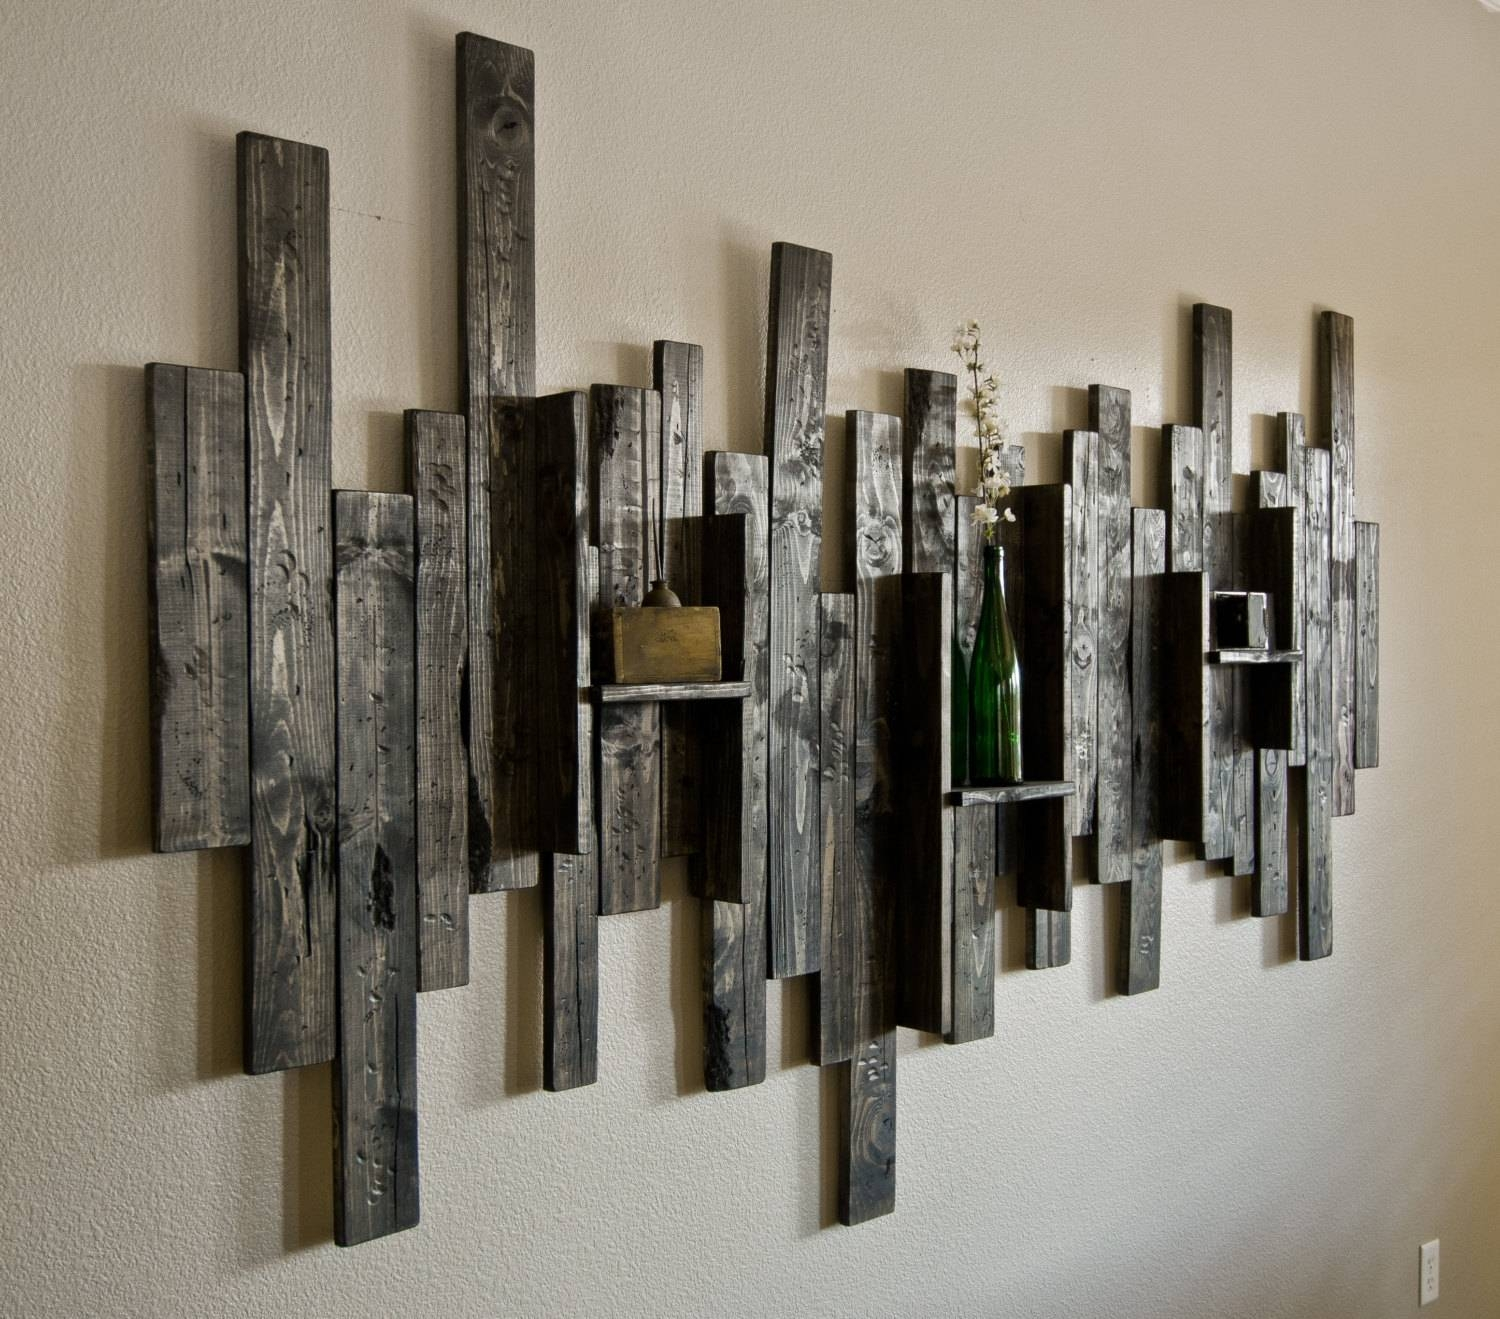 Explore Photos of Rustic Metal Wall Art Showing 10 of 20 Photos